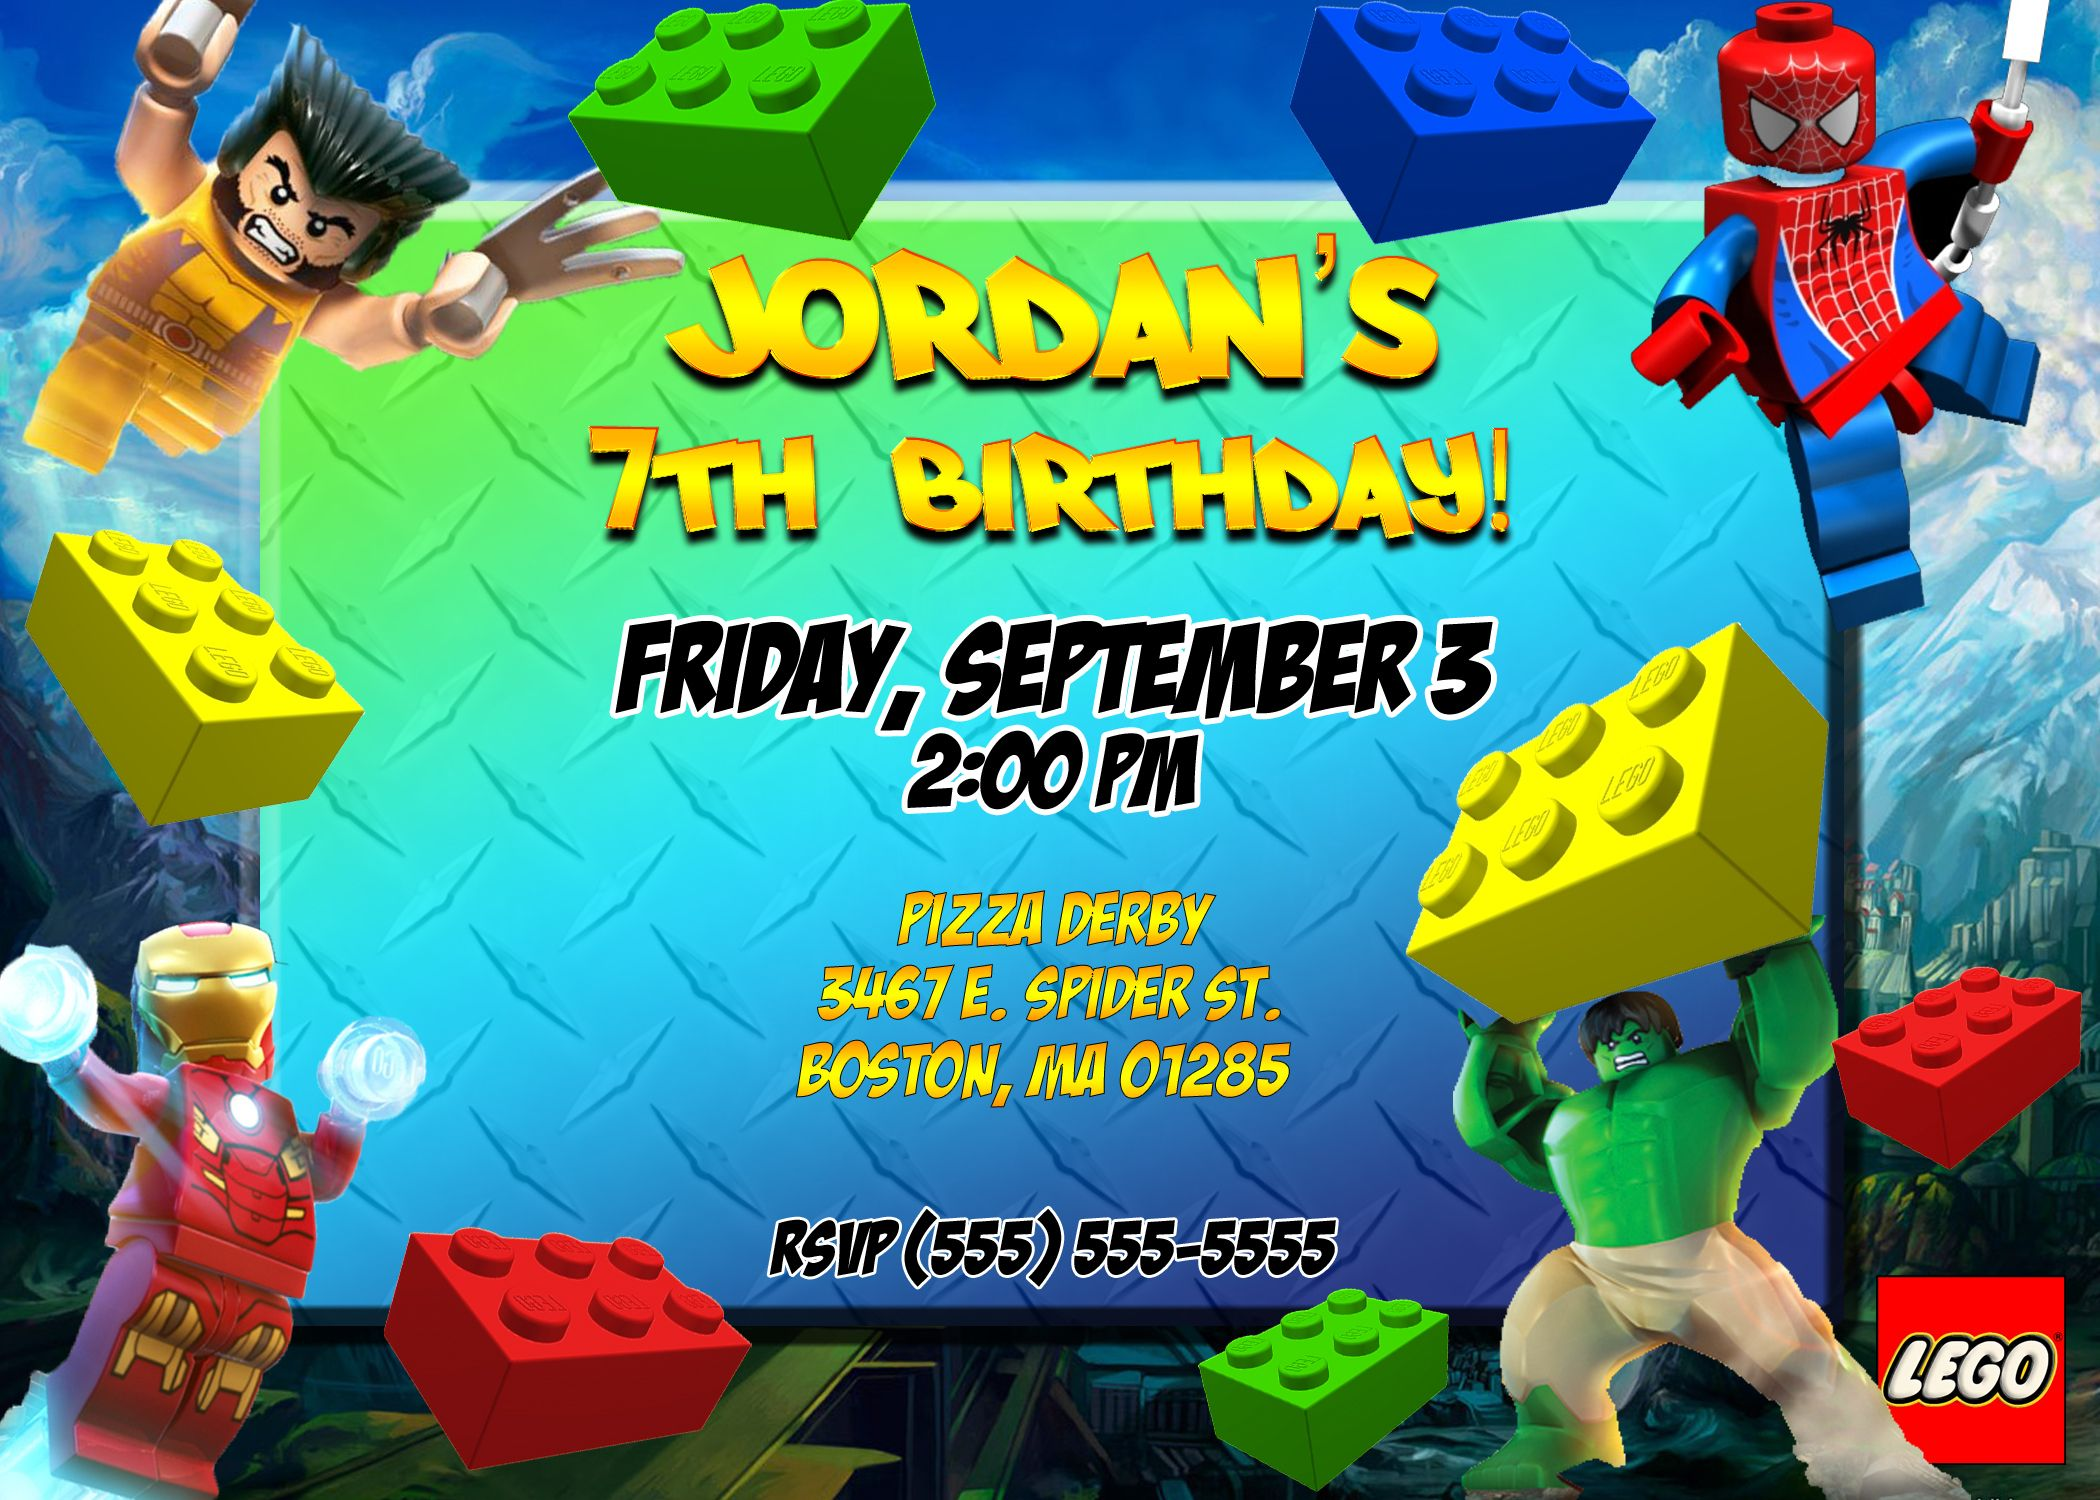 Download now lego birthday party invitation ideas download this download now lego birthday party invitation ideas download this invitation for free at http bookmarktalkfo Image collections